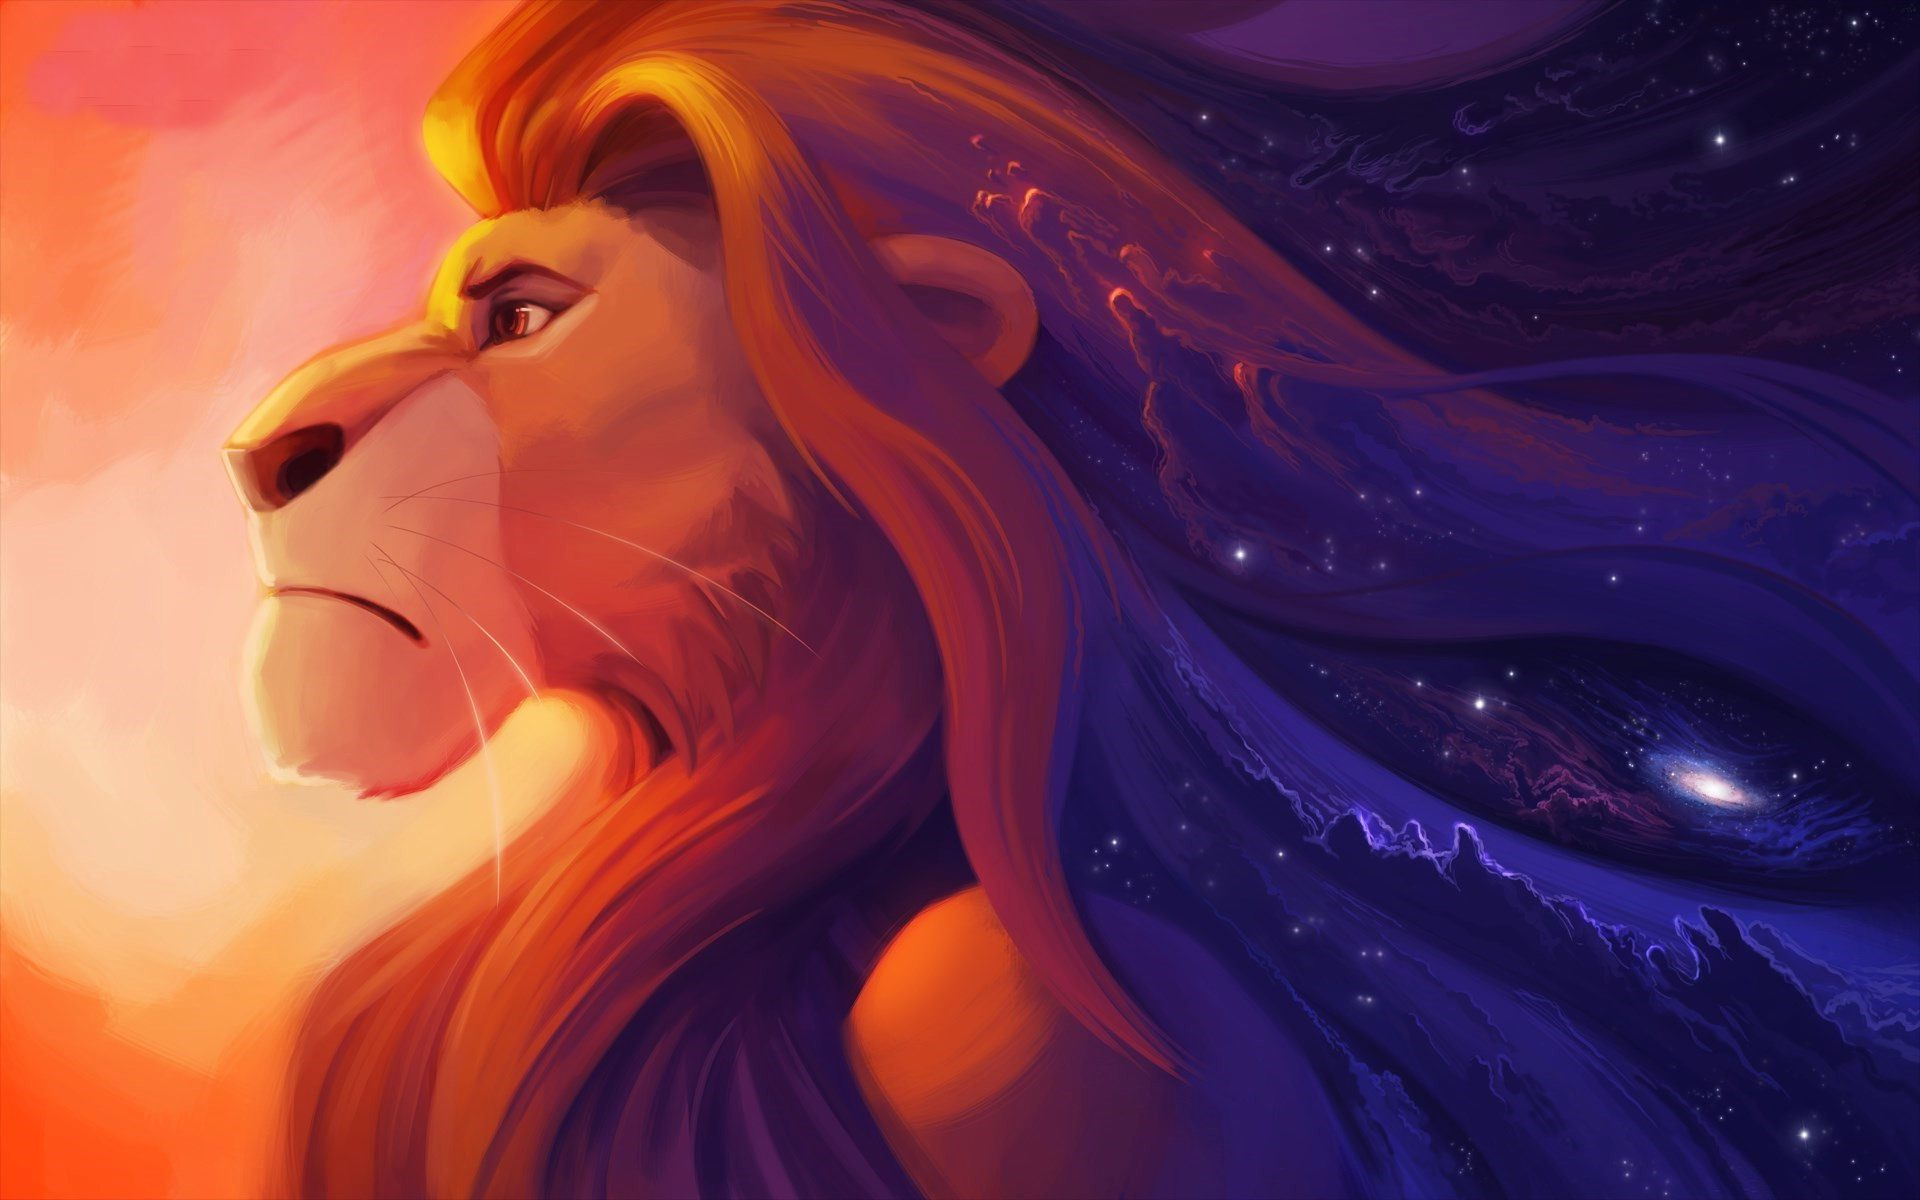 The Lion King images Mufasa fanart wallpaper photos 37760666 1920x1200